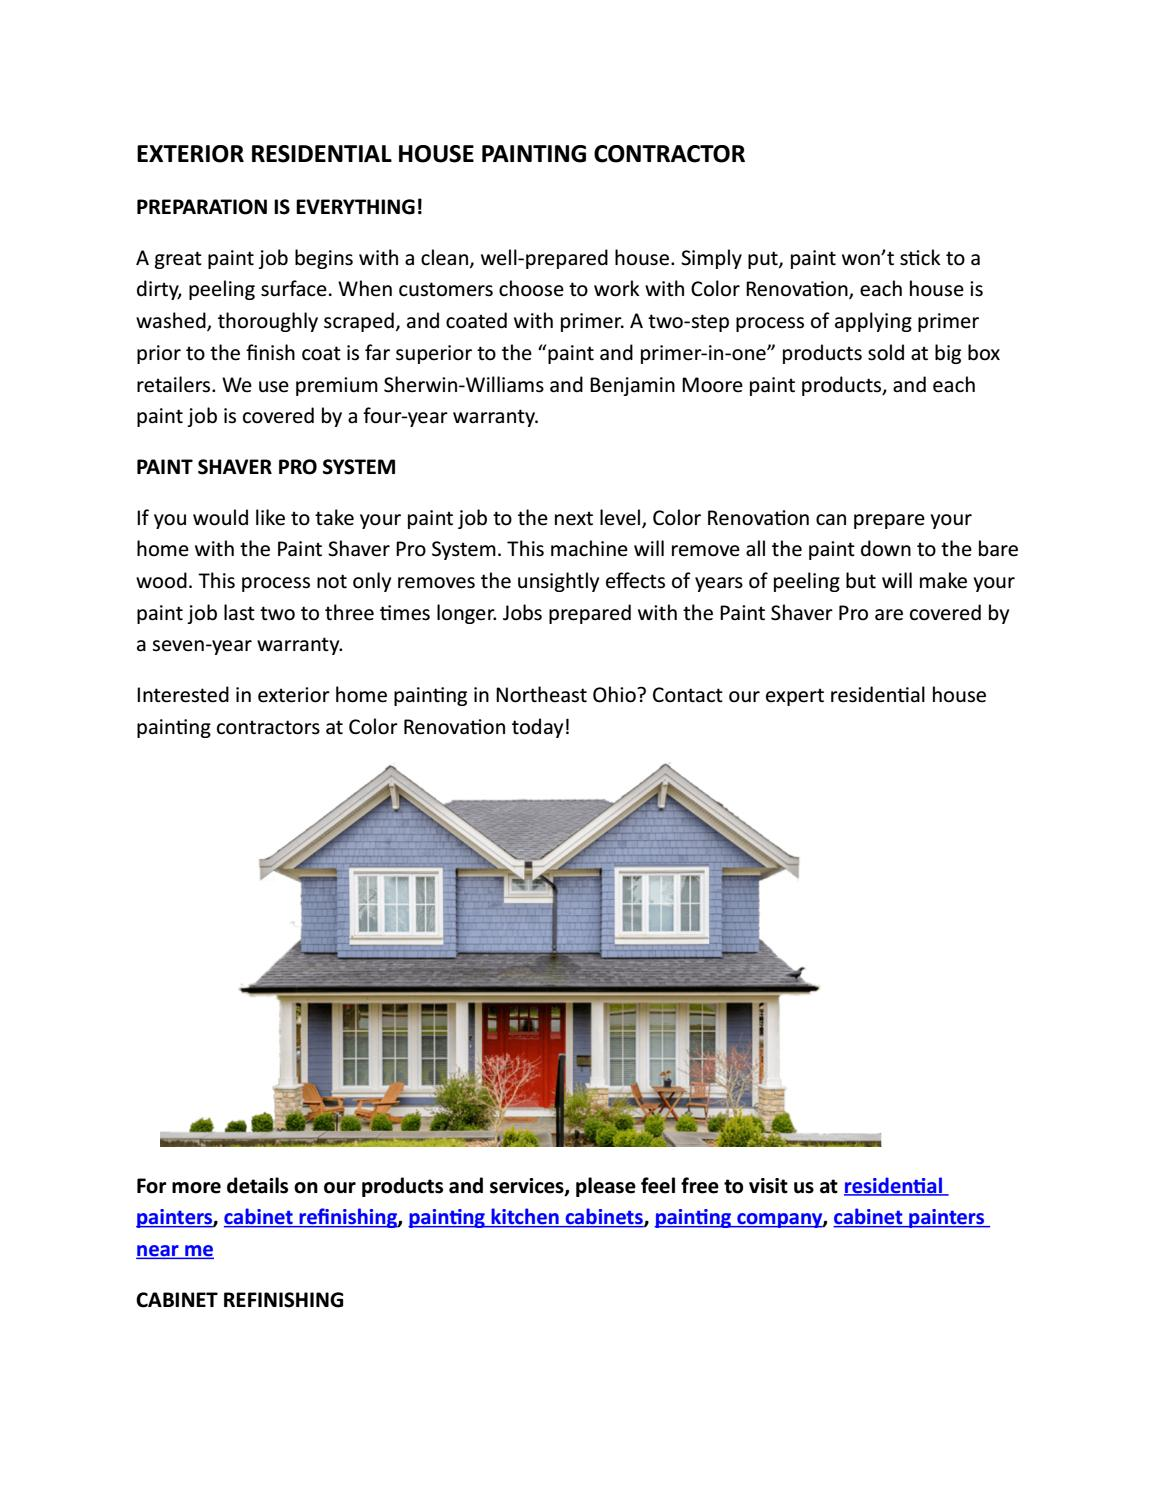 Exterior Residential House Painting Contractor By Colorrenovation Issuu